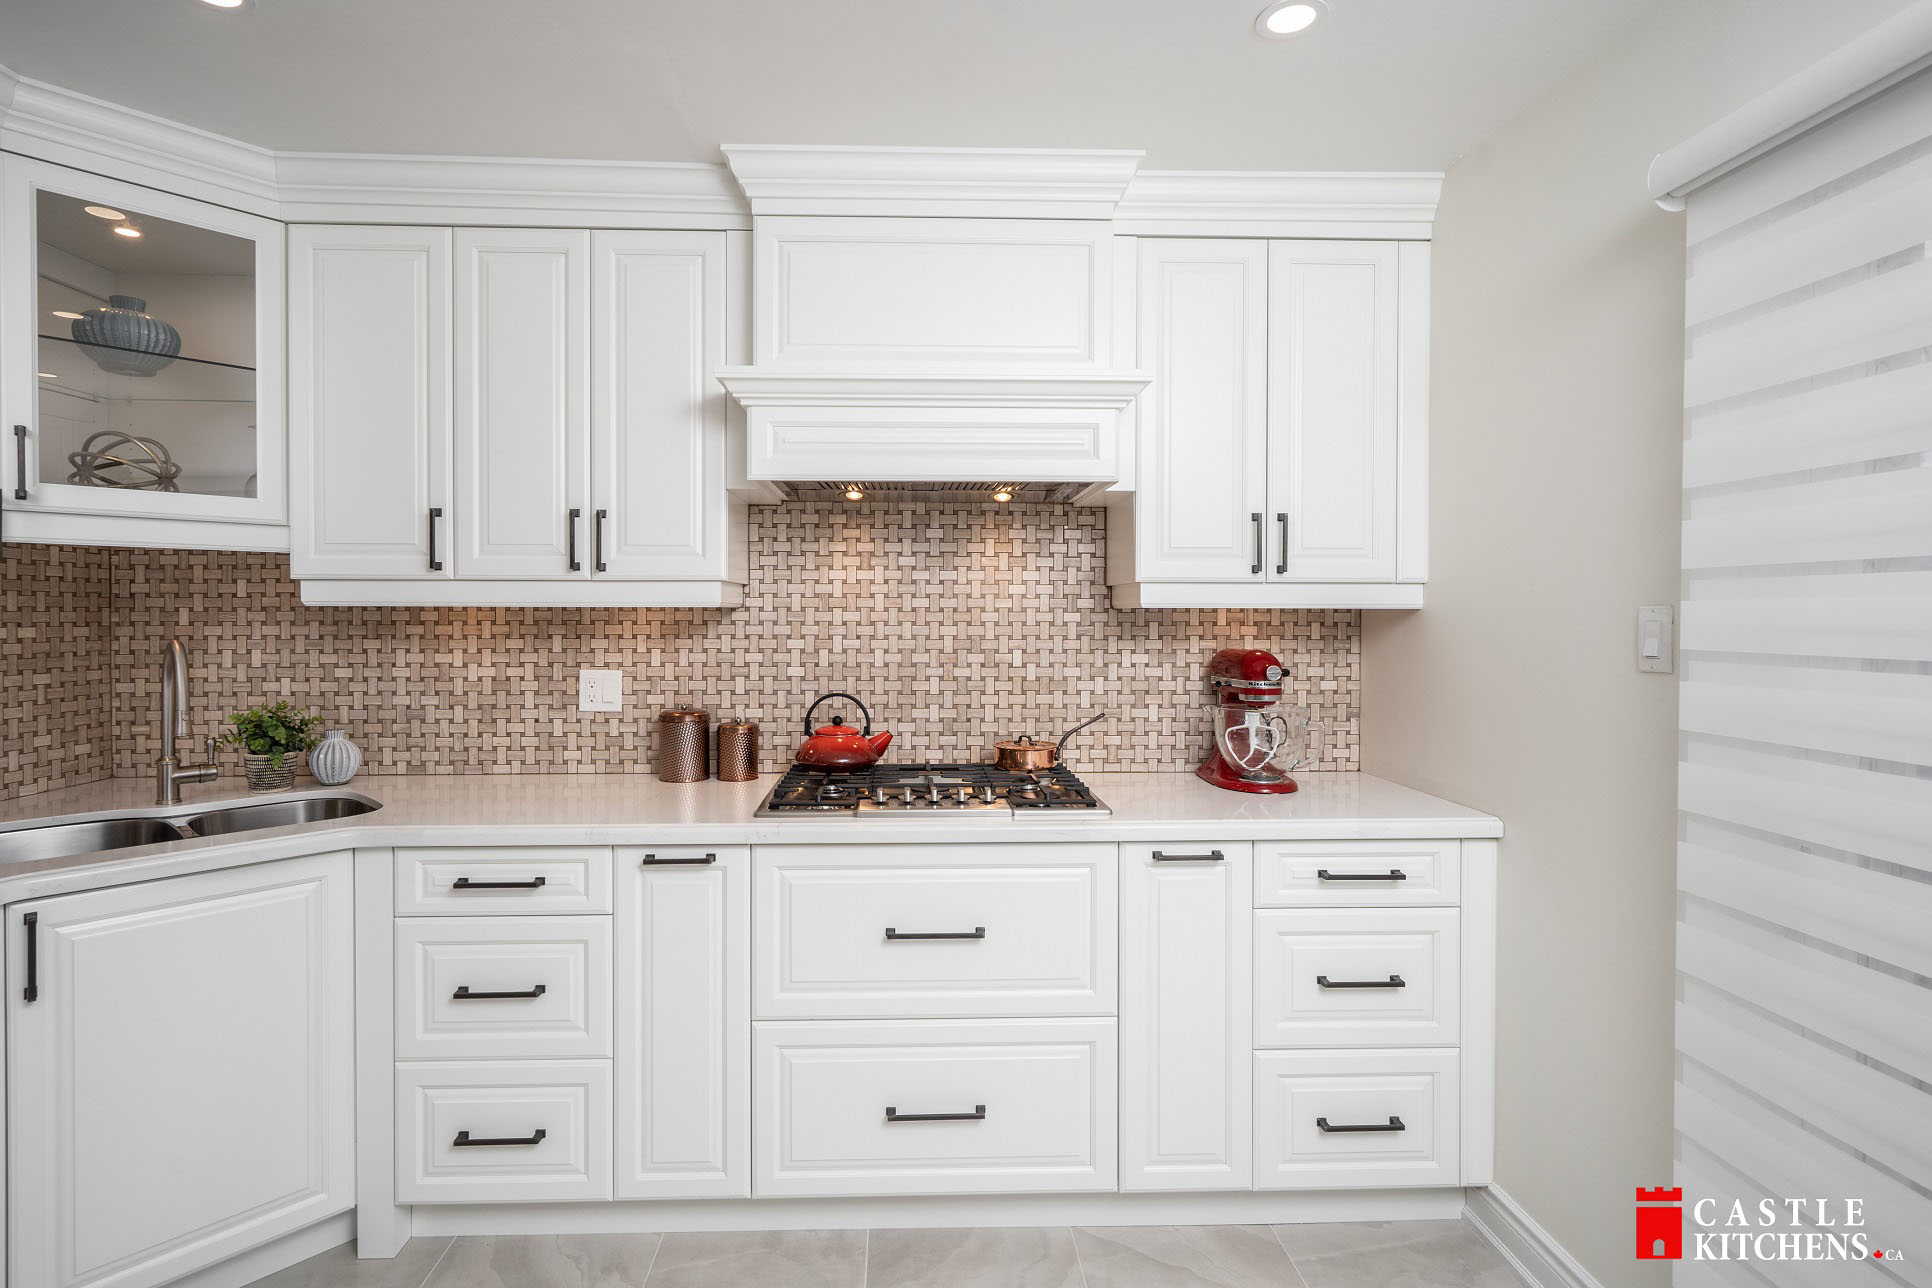 General Contractor for Kitchen